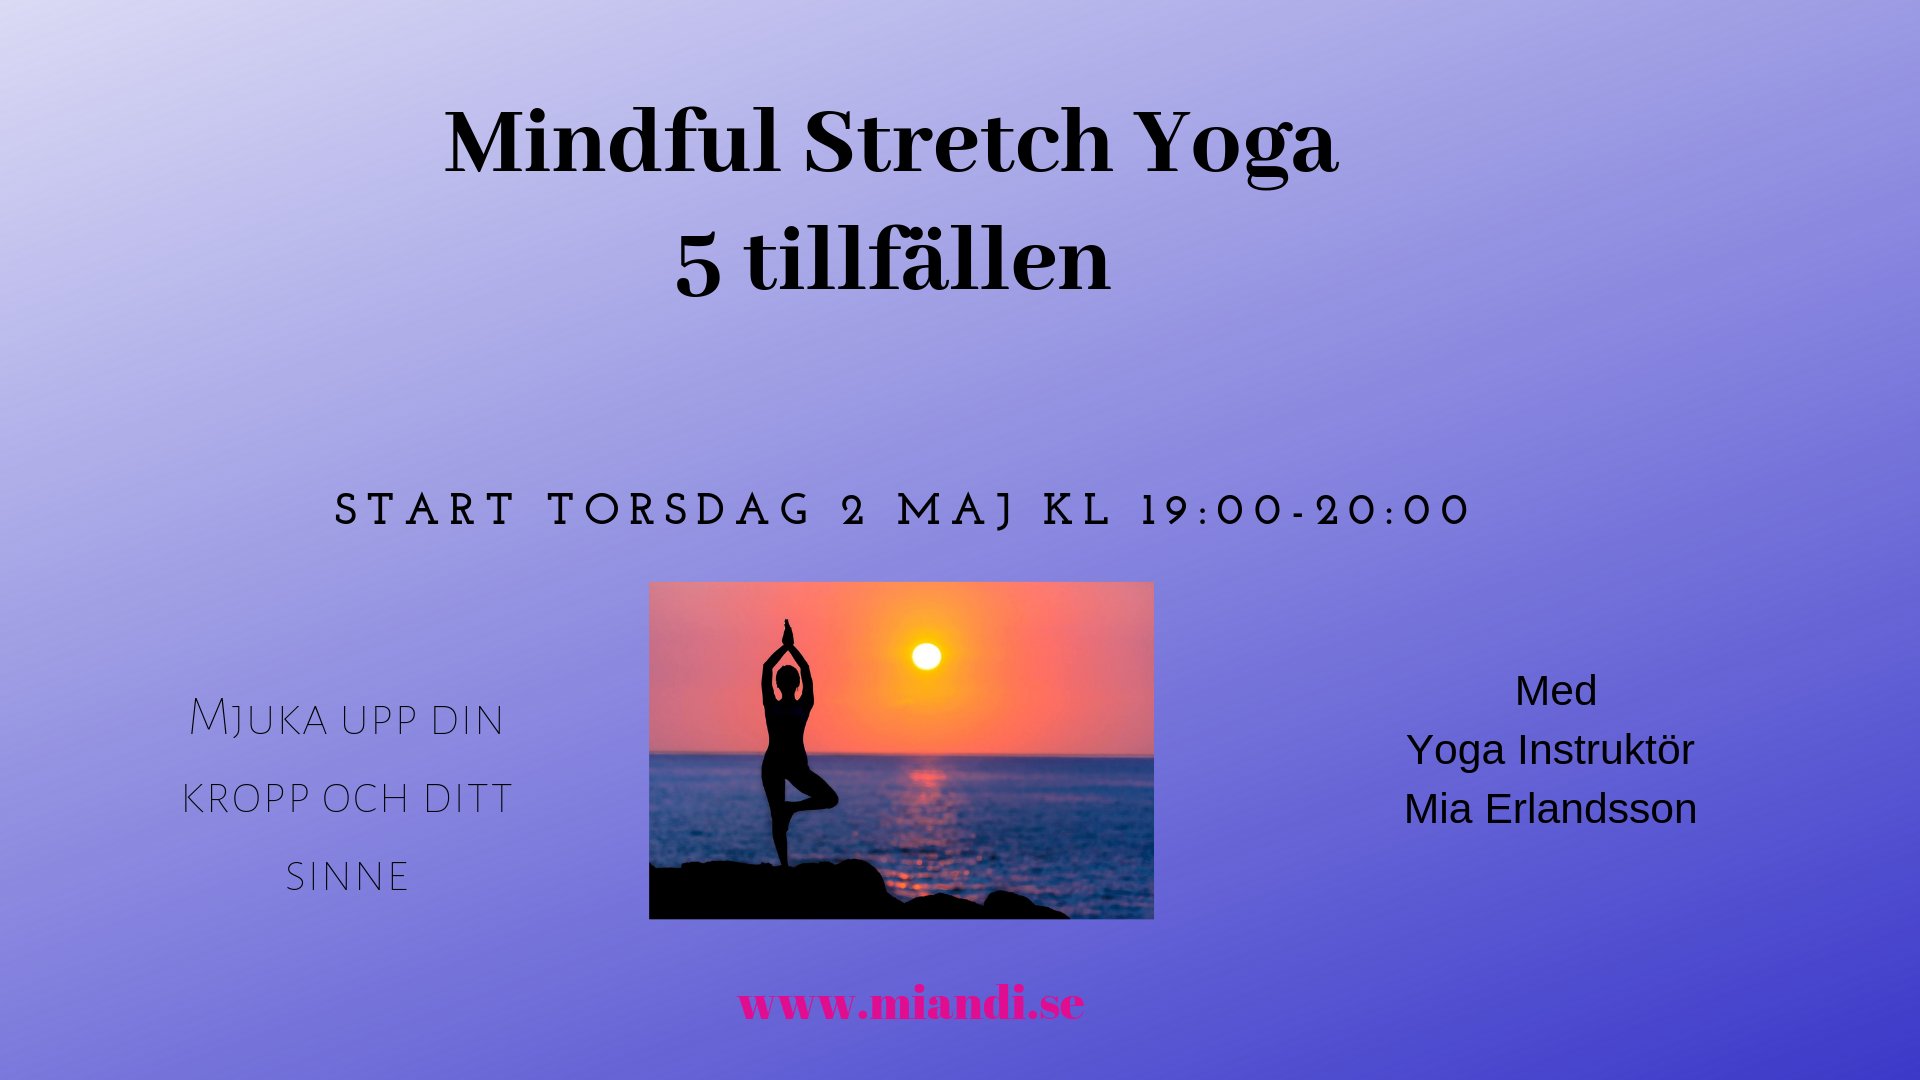 Mindful Stretch Yoga 5 tillfällen